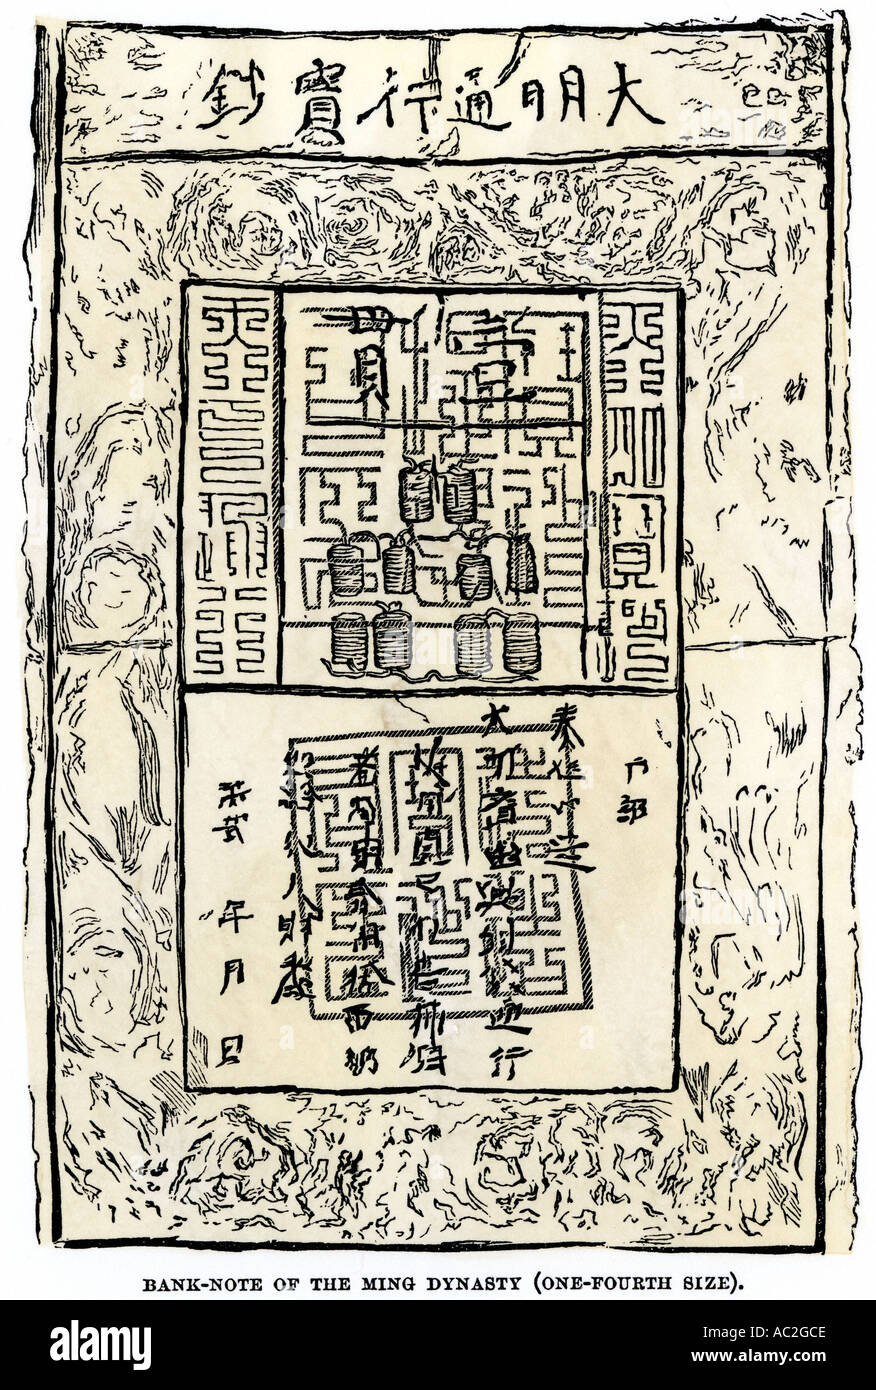 Paper bank note of the Ming Dynasty China. Woodcut with a watercolor wash - Stock Image